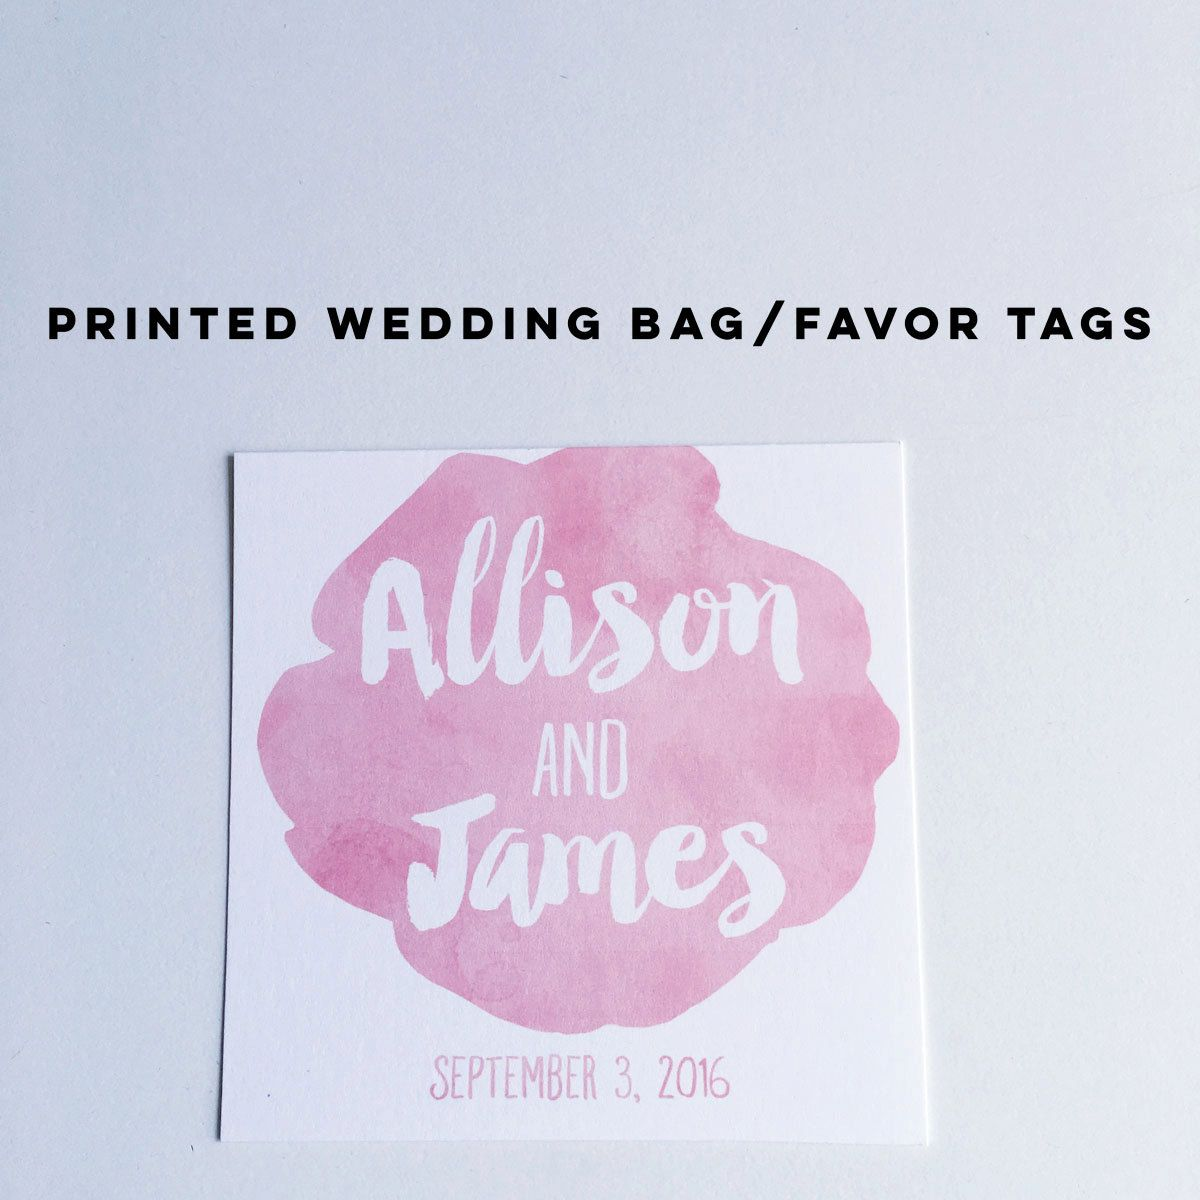 Personalized Wedding Welcome Bag Tags in a pretty in pink design ...